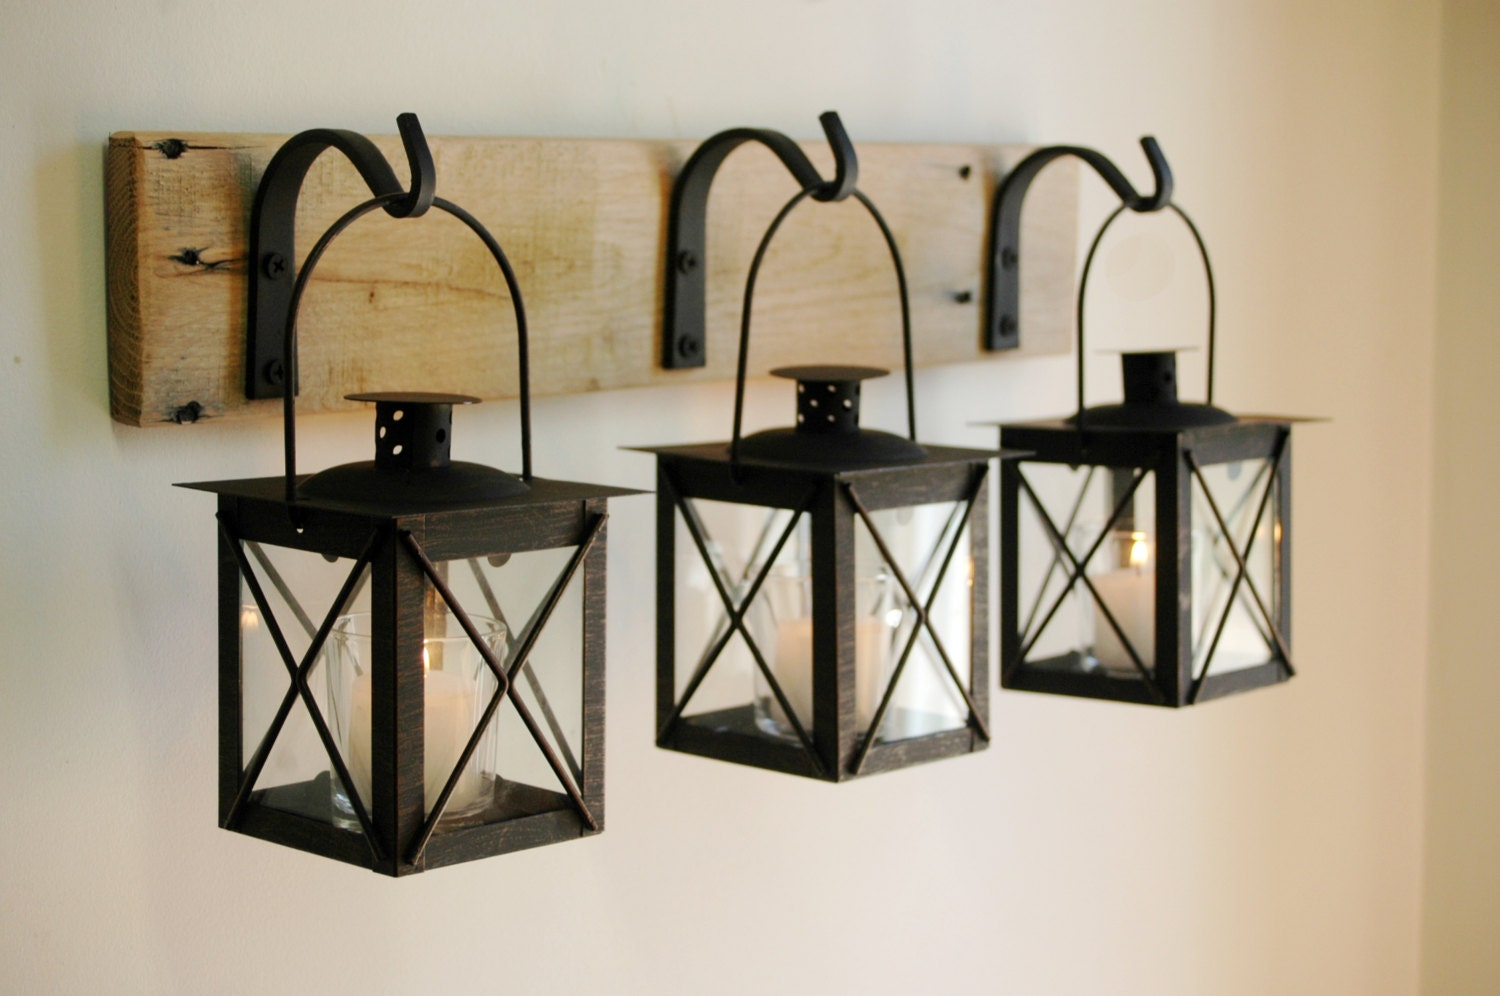 Rustic Wall Decor Amusing Black Lantern Trio Wall Decor Home Decor Rustic Decor Review